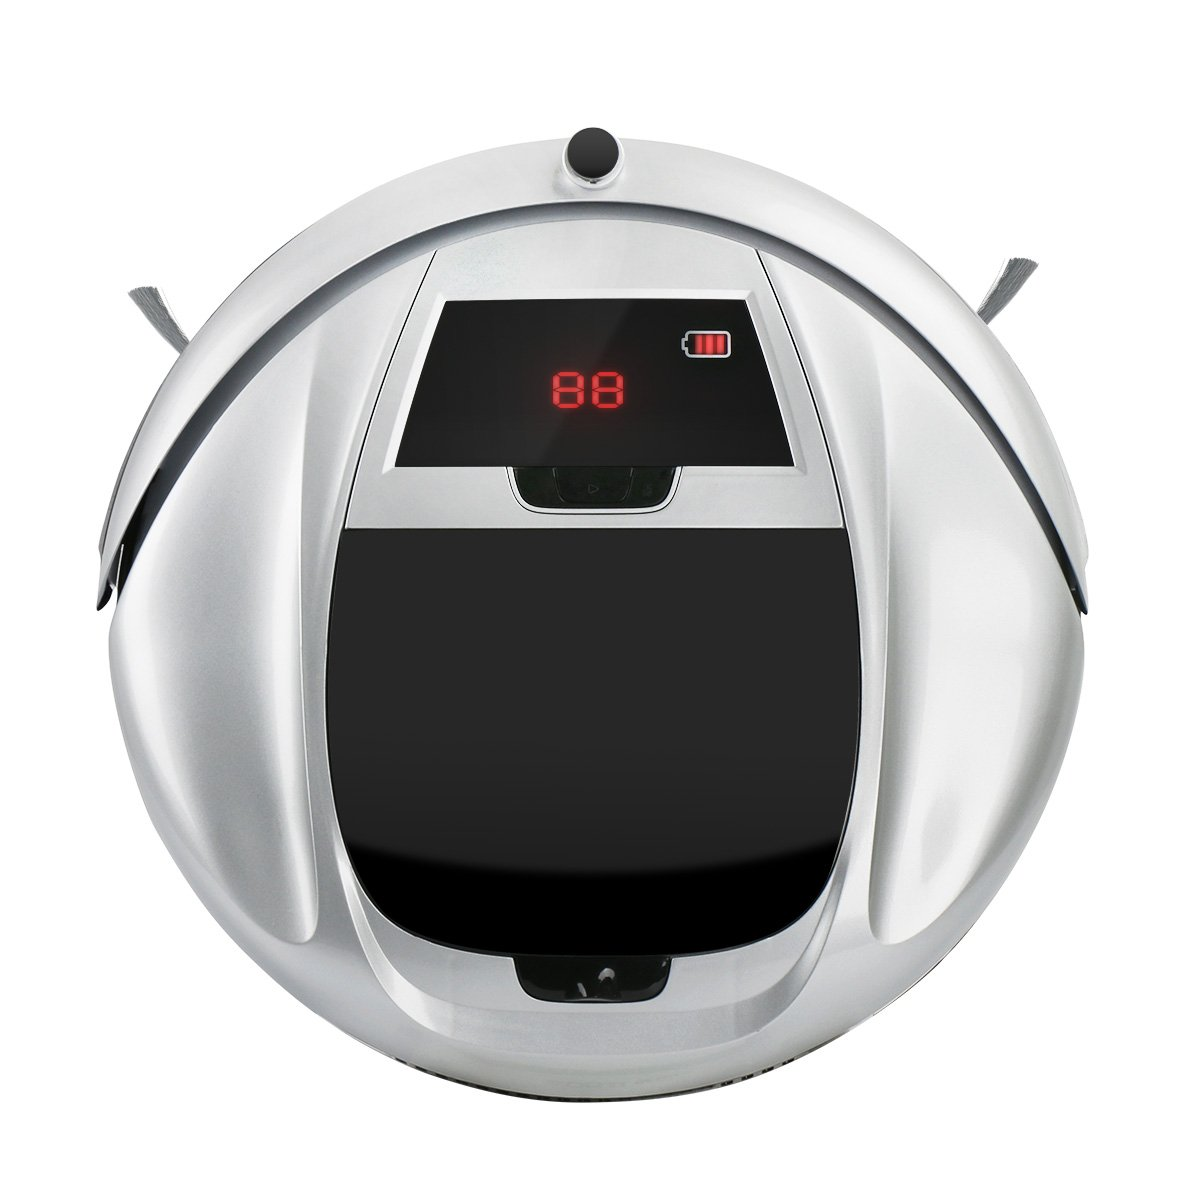 Robotic Vacuum Cleaner, Robot Vacuum with 860PA Strong Suction, Auto-Charging Robotic Vacuum with Dock Station and Remote Control, Double Filter for Pet Hair, Low-pile Carpet and Hard Floor(Silver)